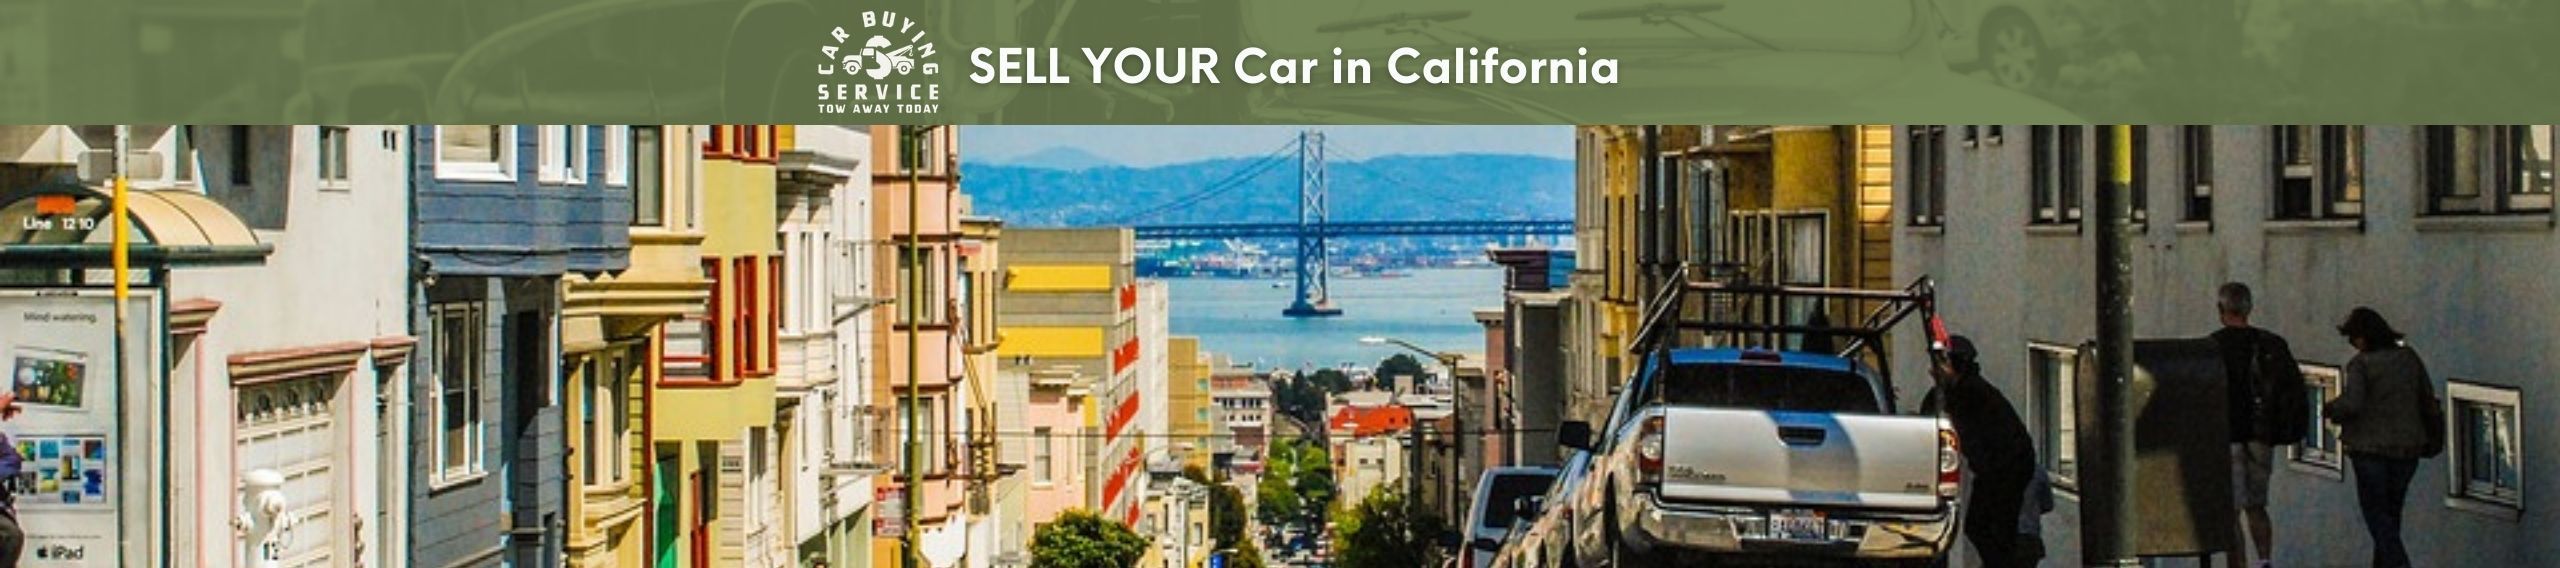 sell your junk car in california